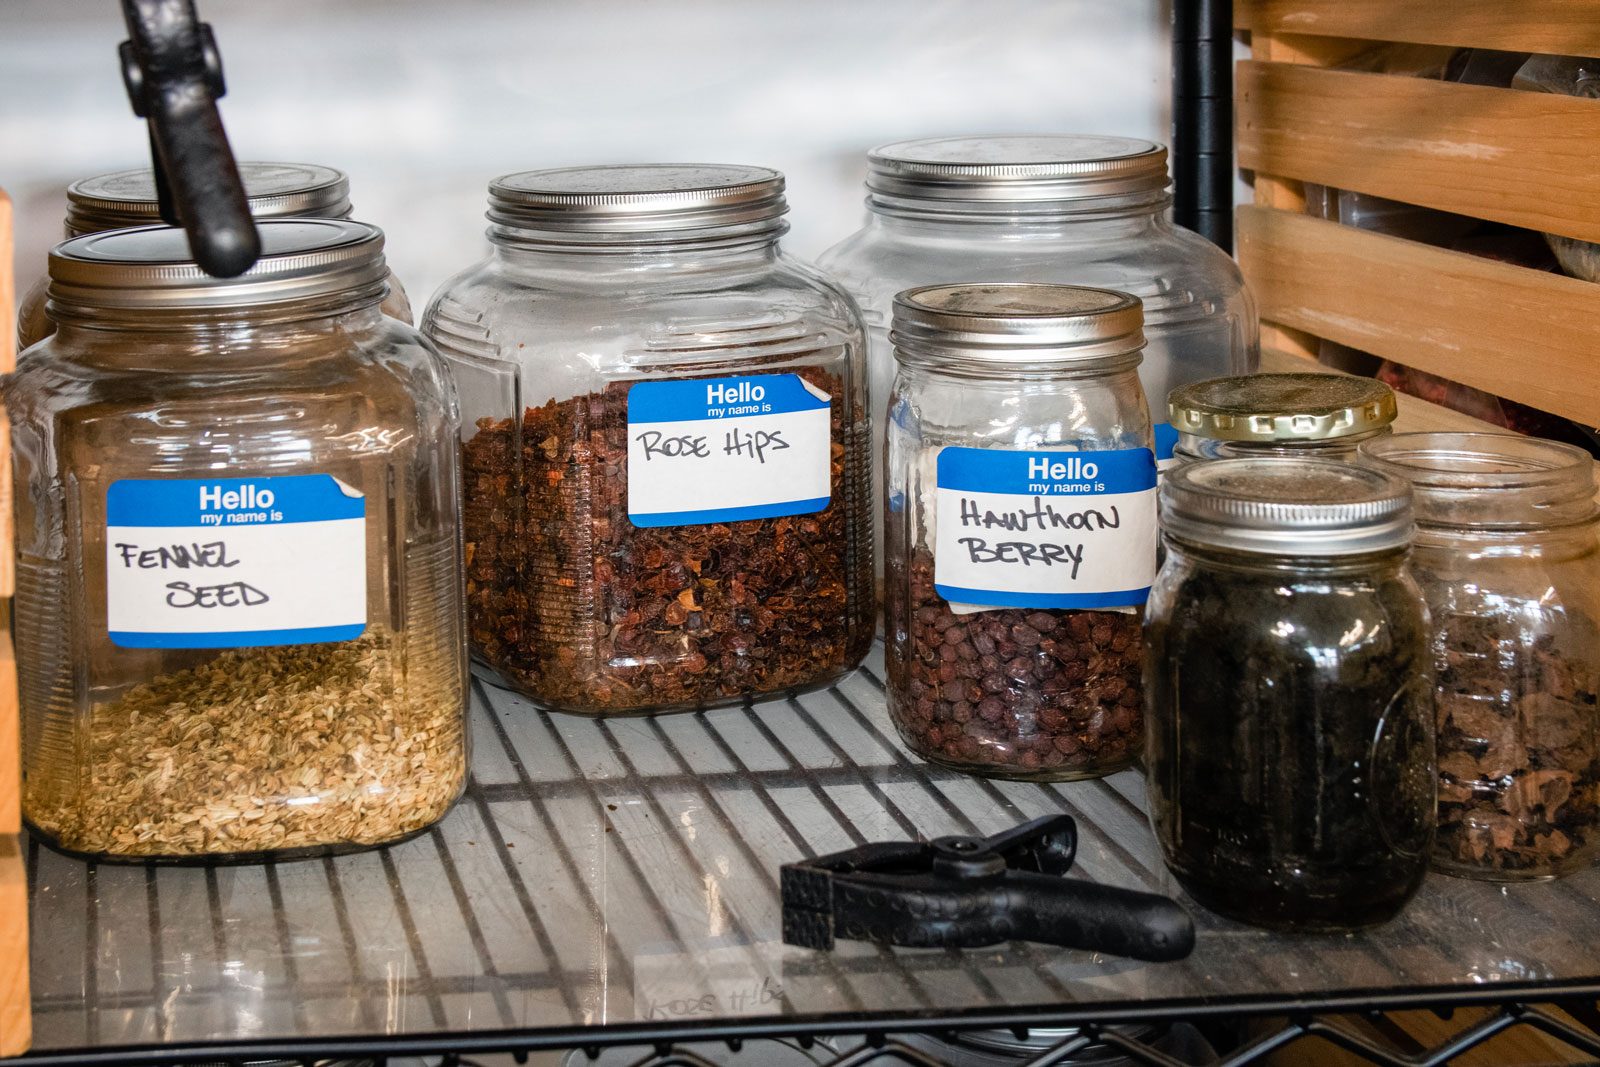 Glass jars filled with different herbs used for distilling.